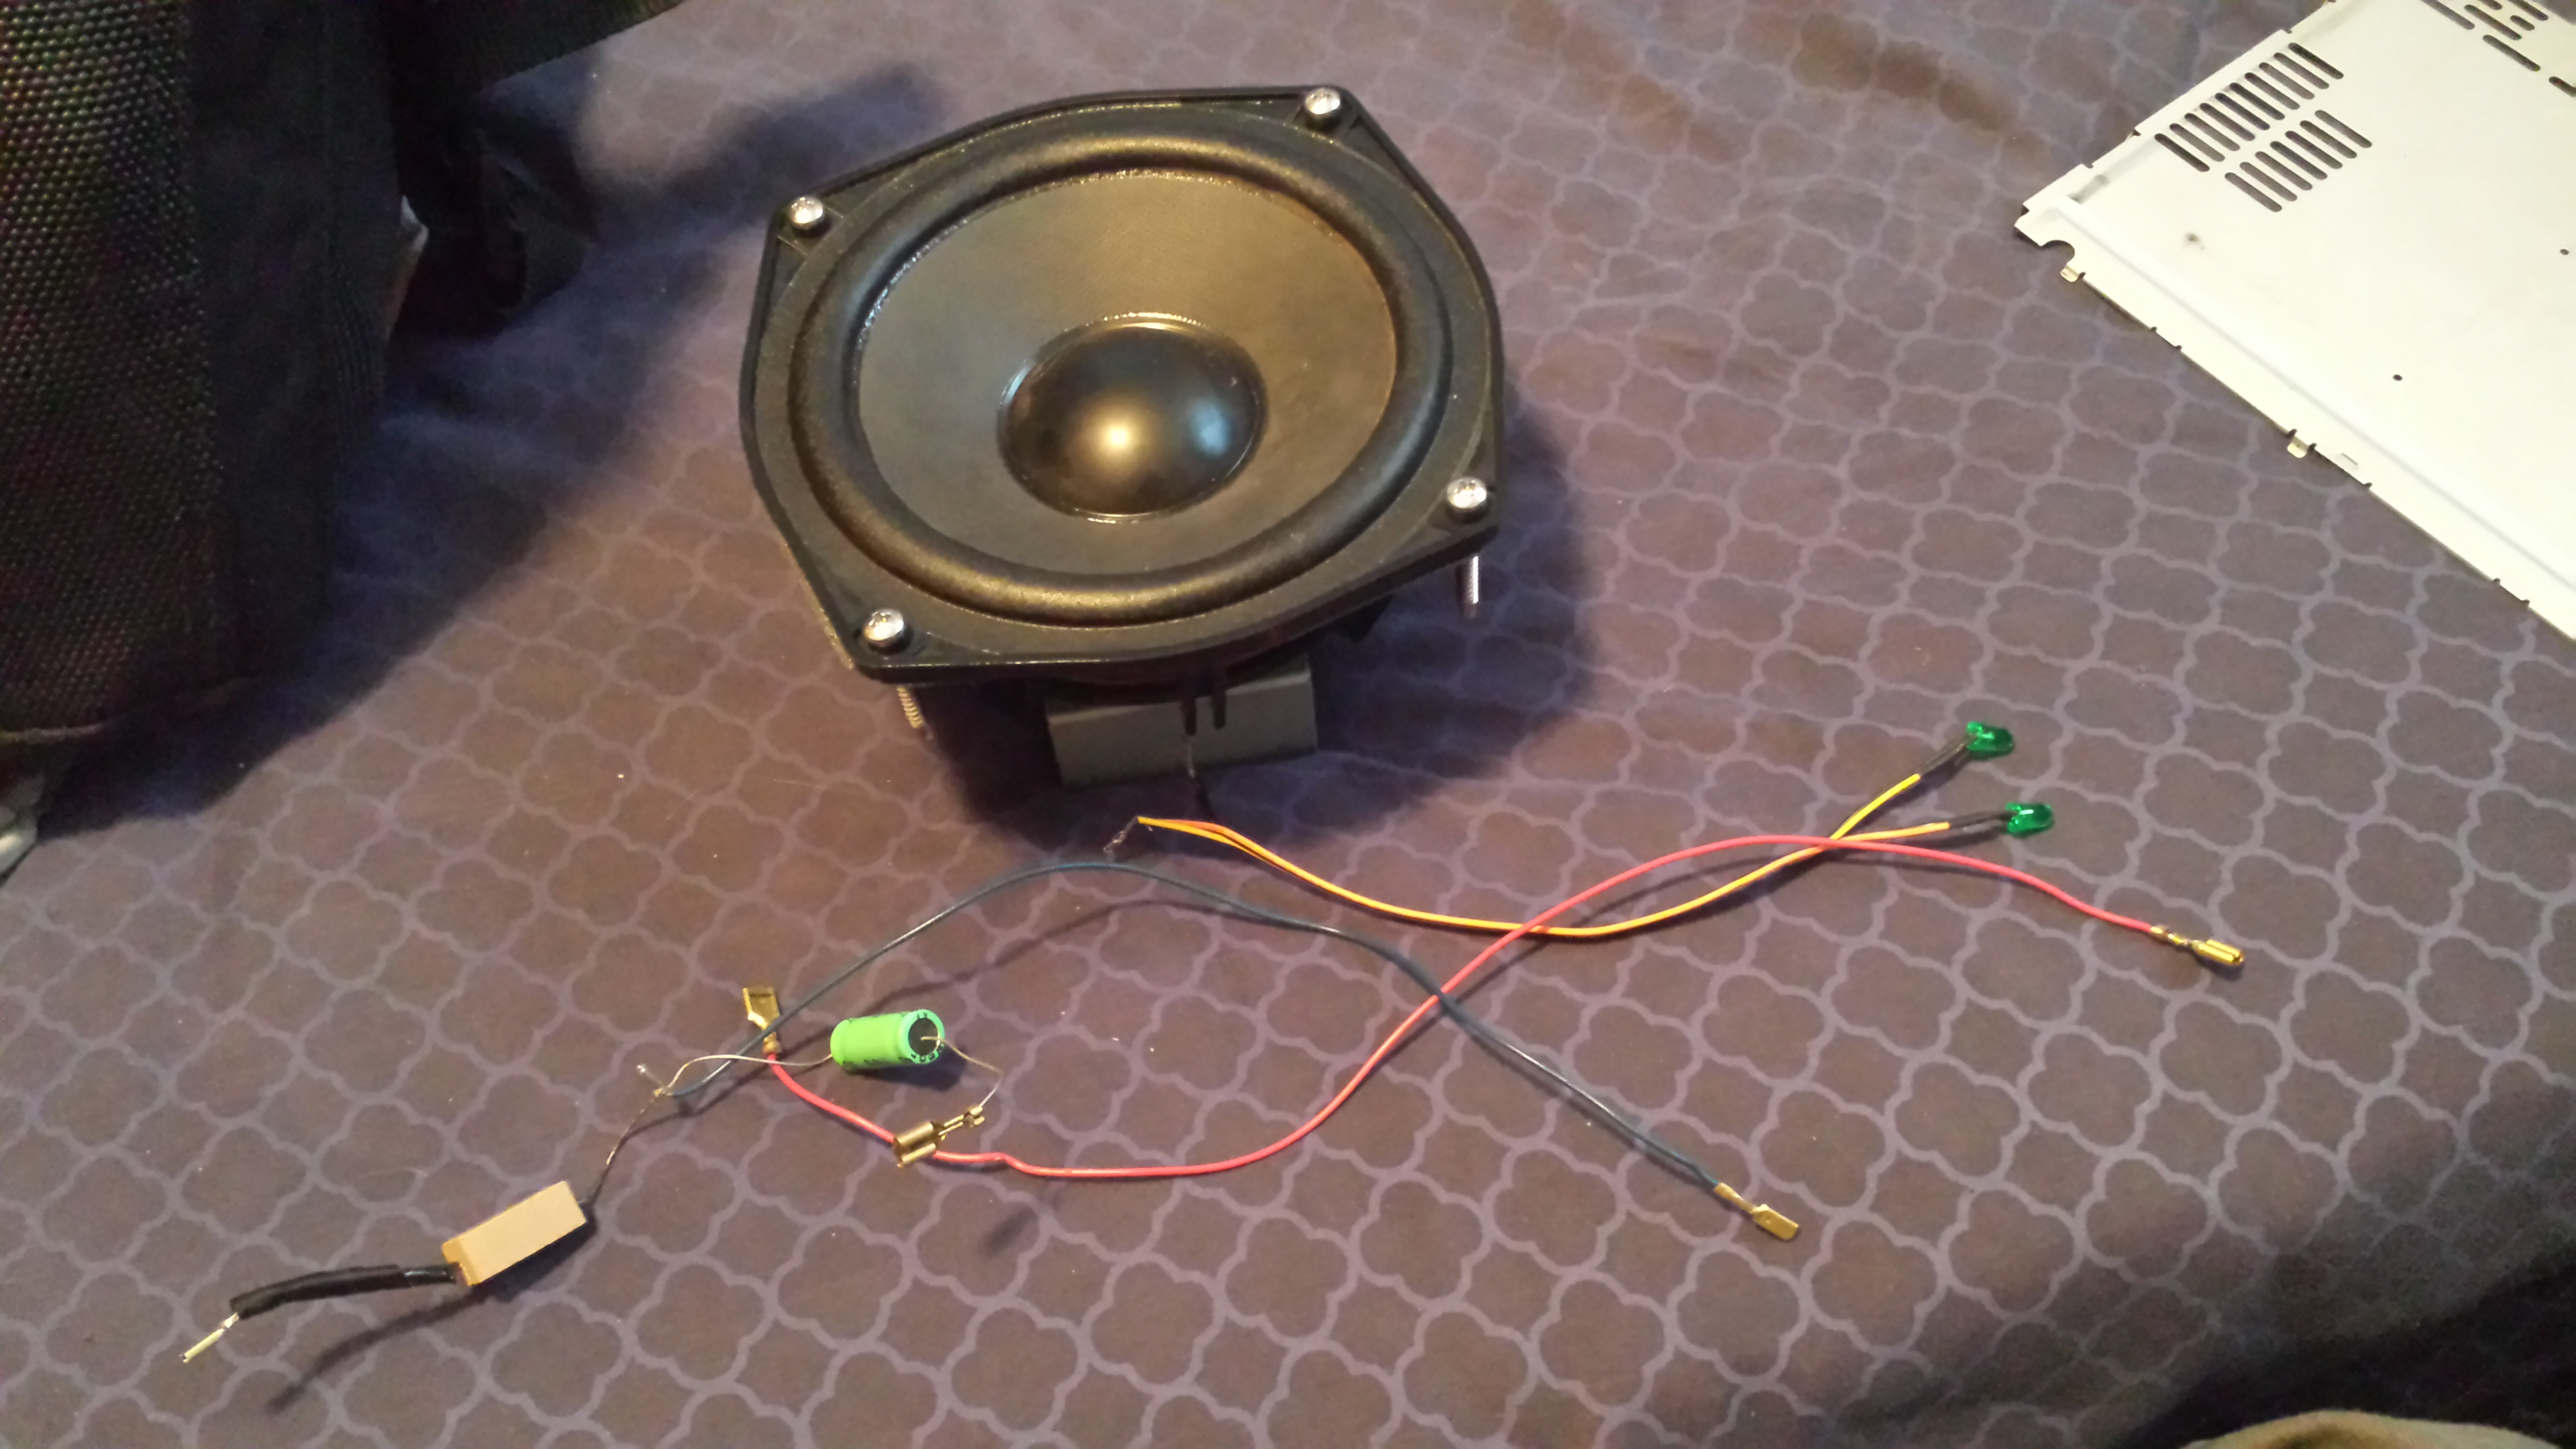 How to Make an LED Input/clip Indicator (plus light show) for Speakers in 3 Insanely Easy Steps. (CRAZY Easy)